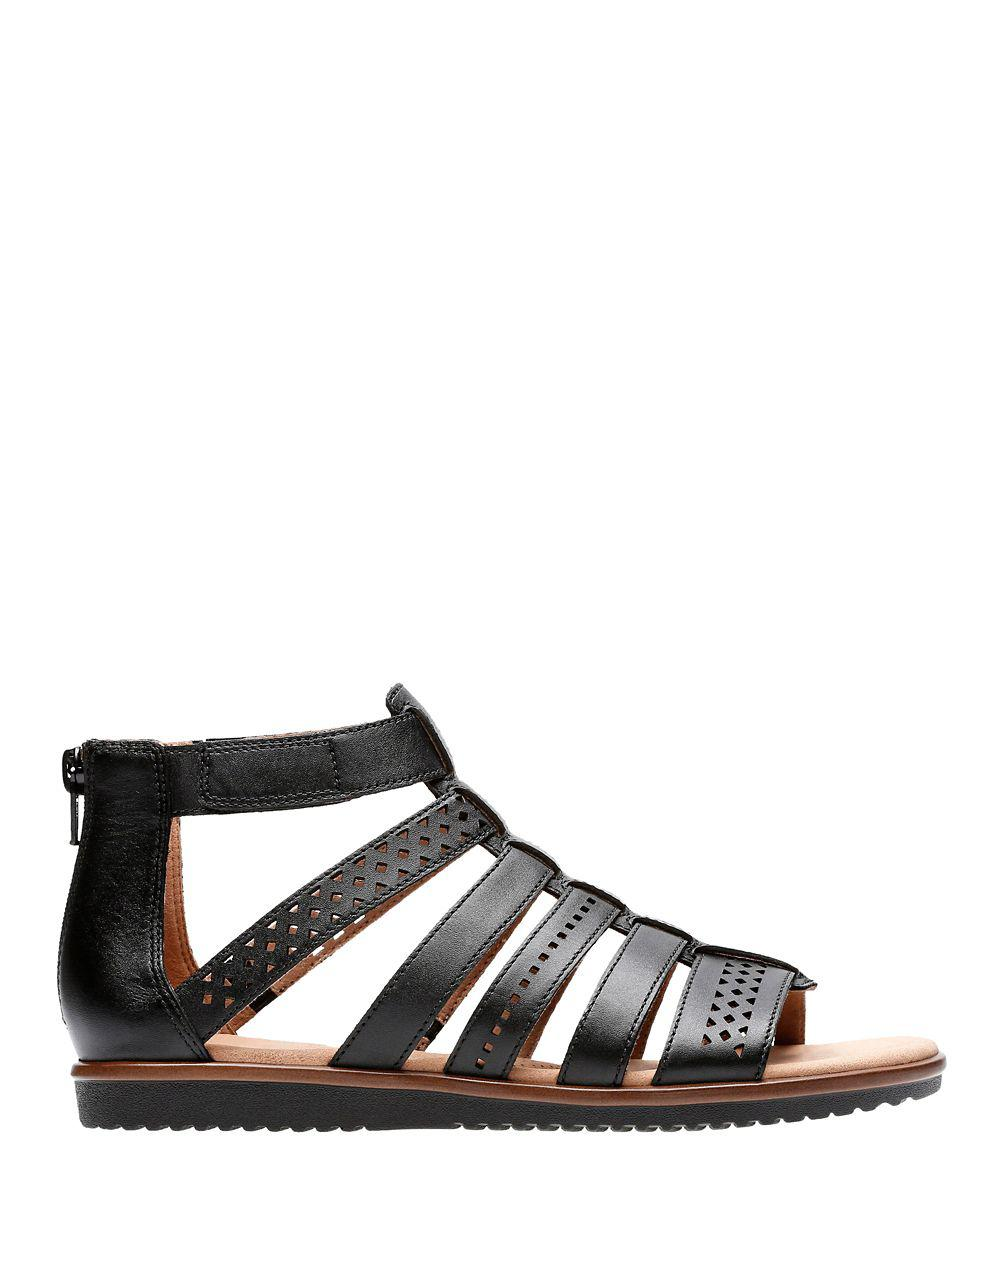 d5796f0c74 Clarks Kele Lotus Strappy Leather Sandals in Black - Lyst